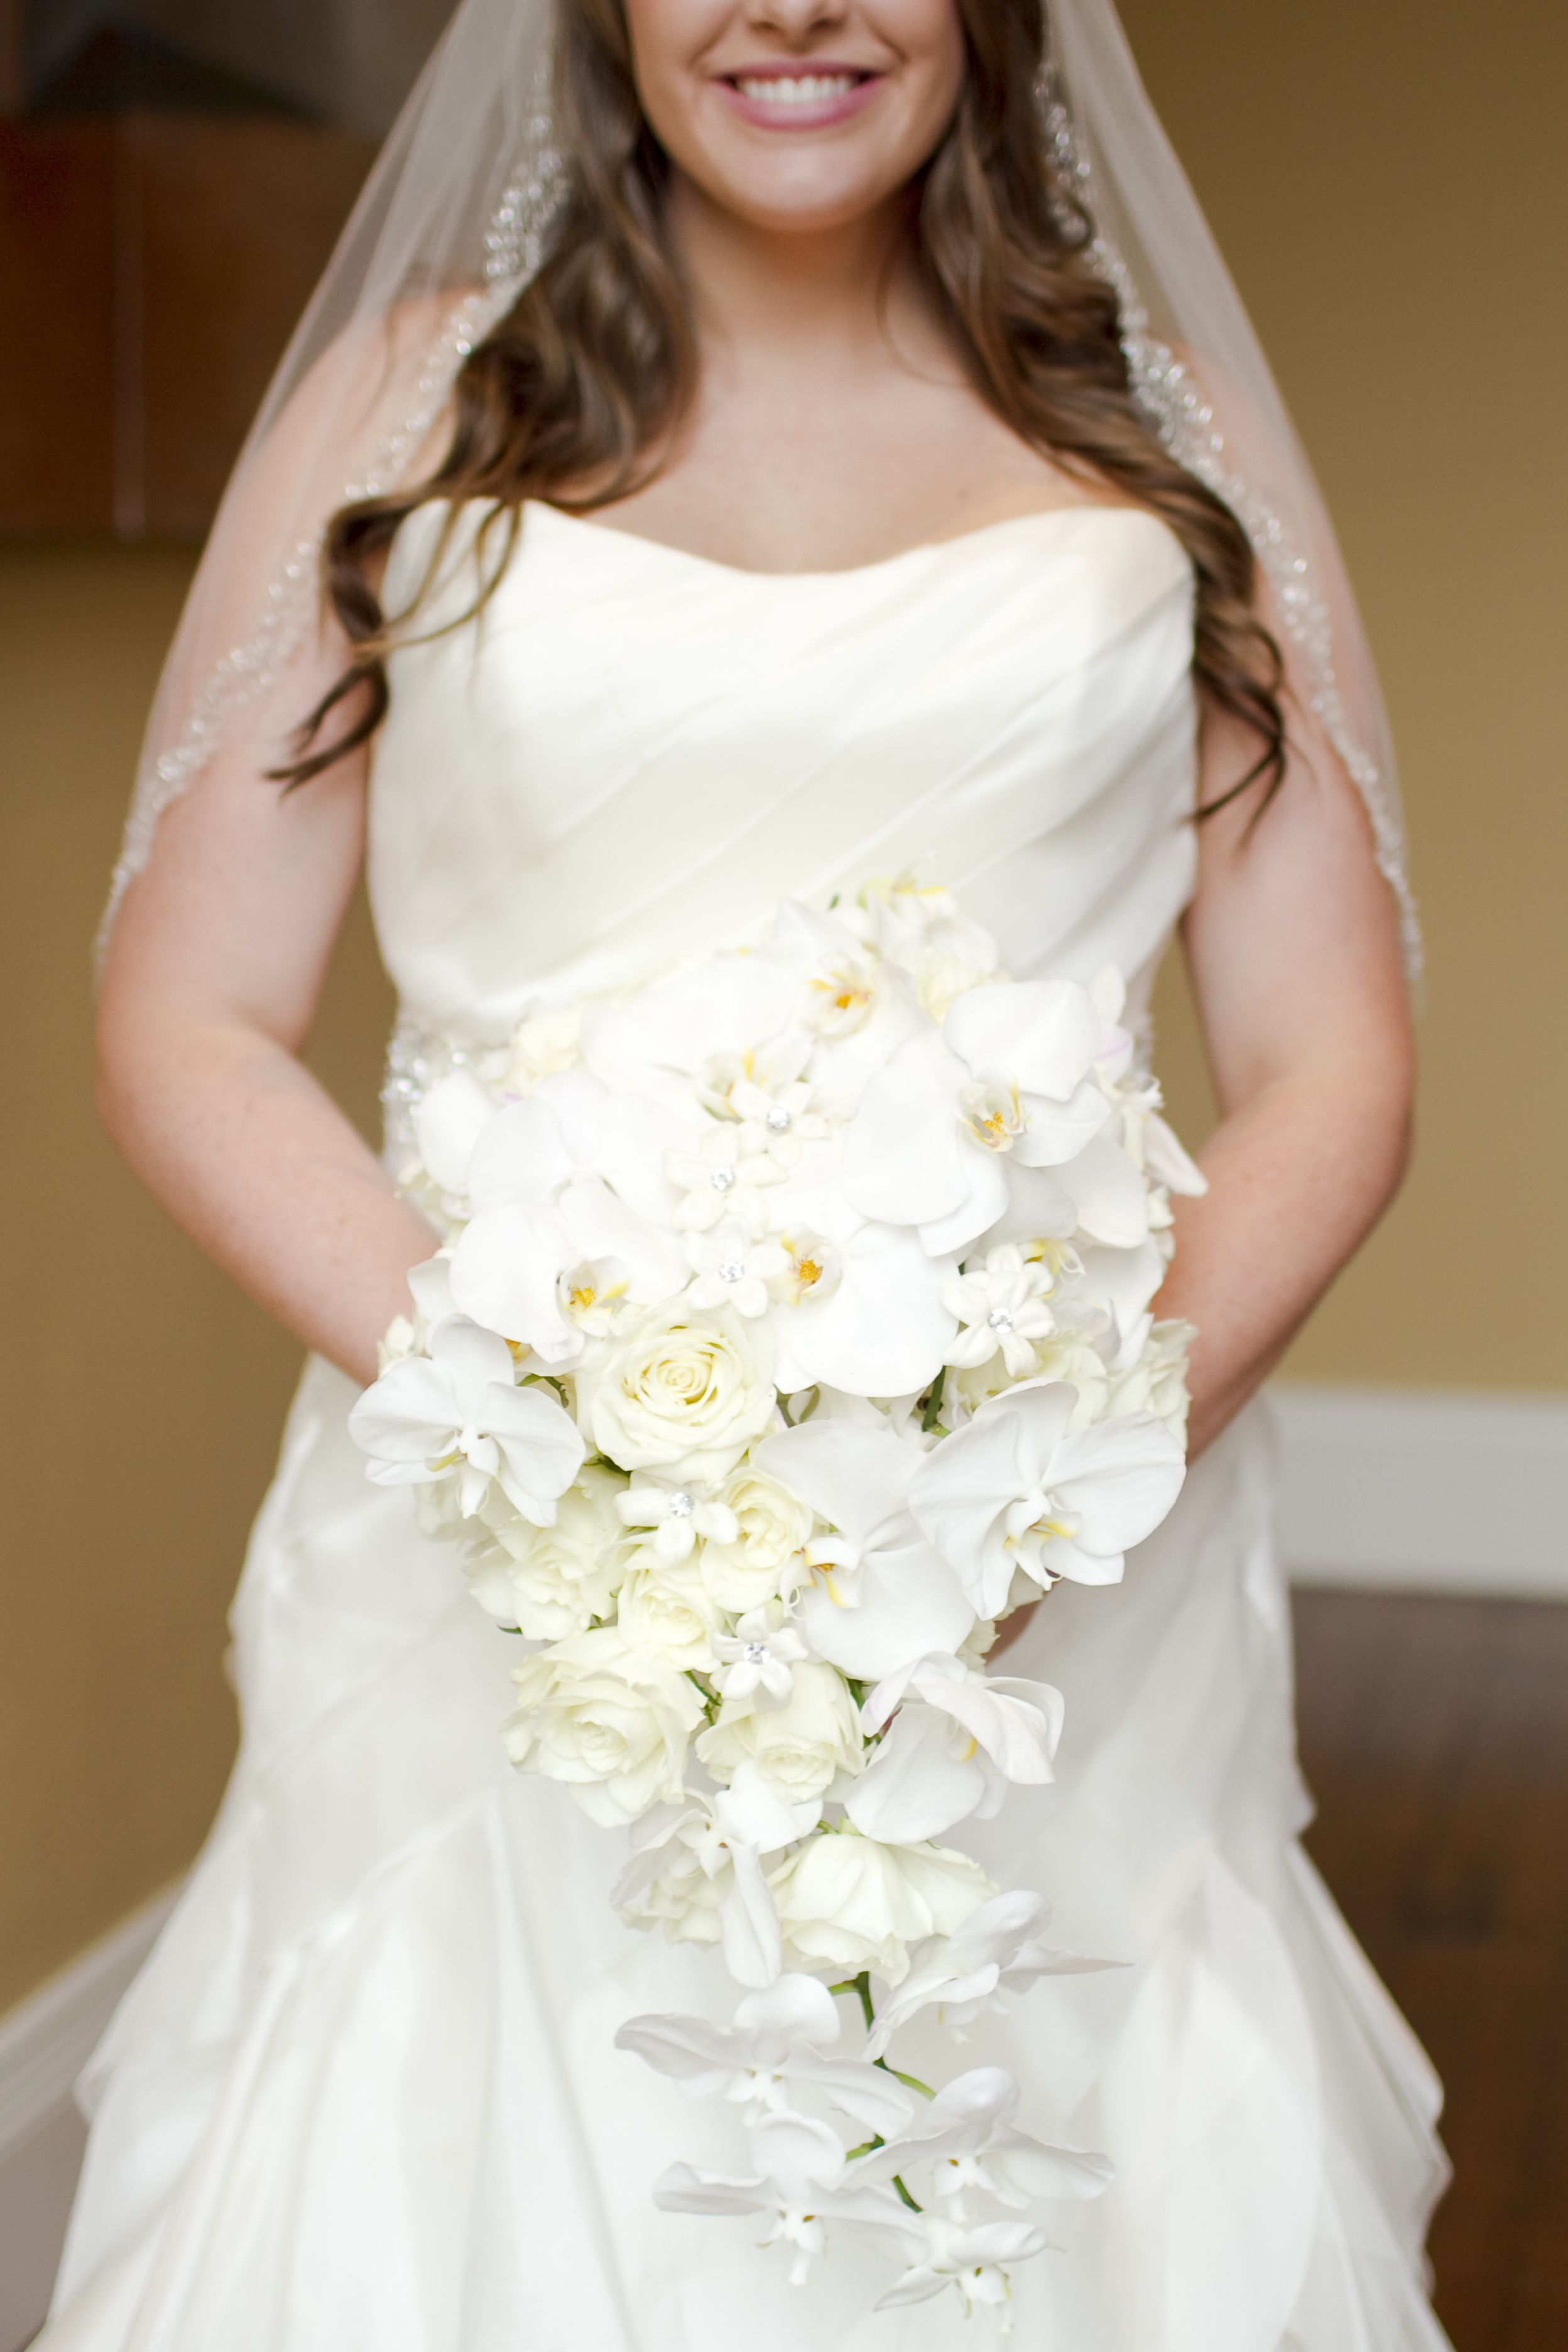 Cascade Orchid Bridal Bouquet : The bouquet will be a long narrow cascade of white